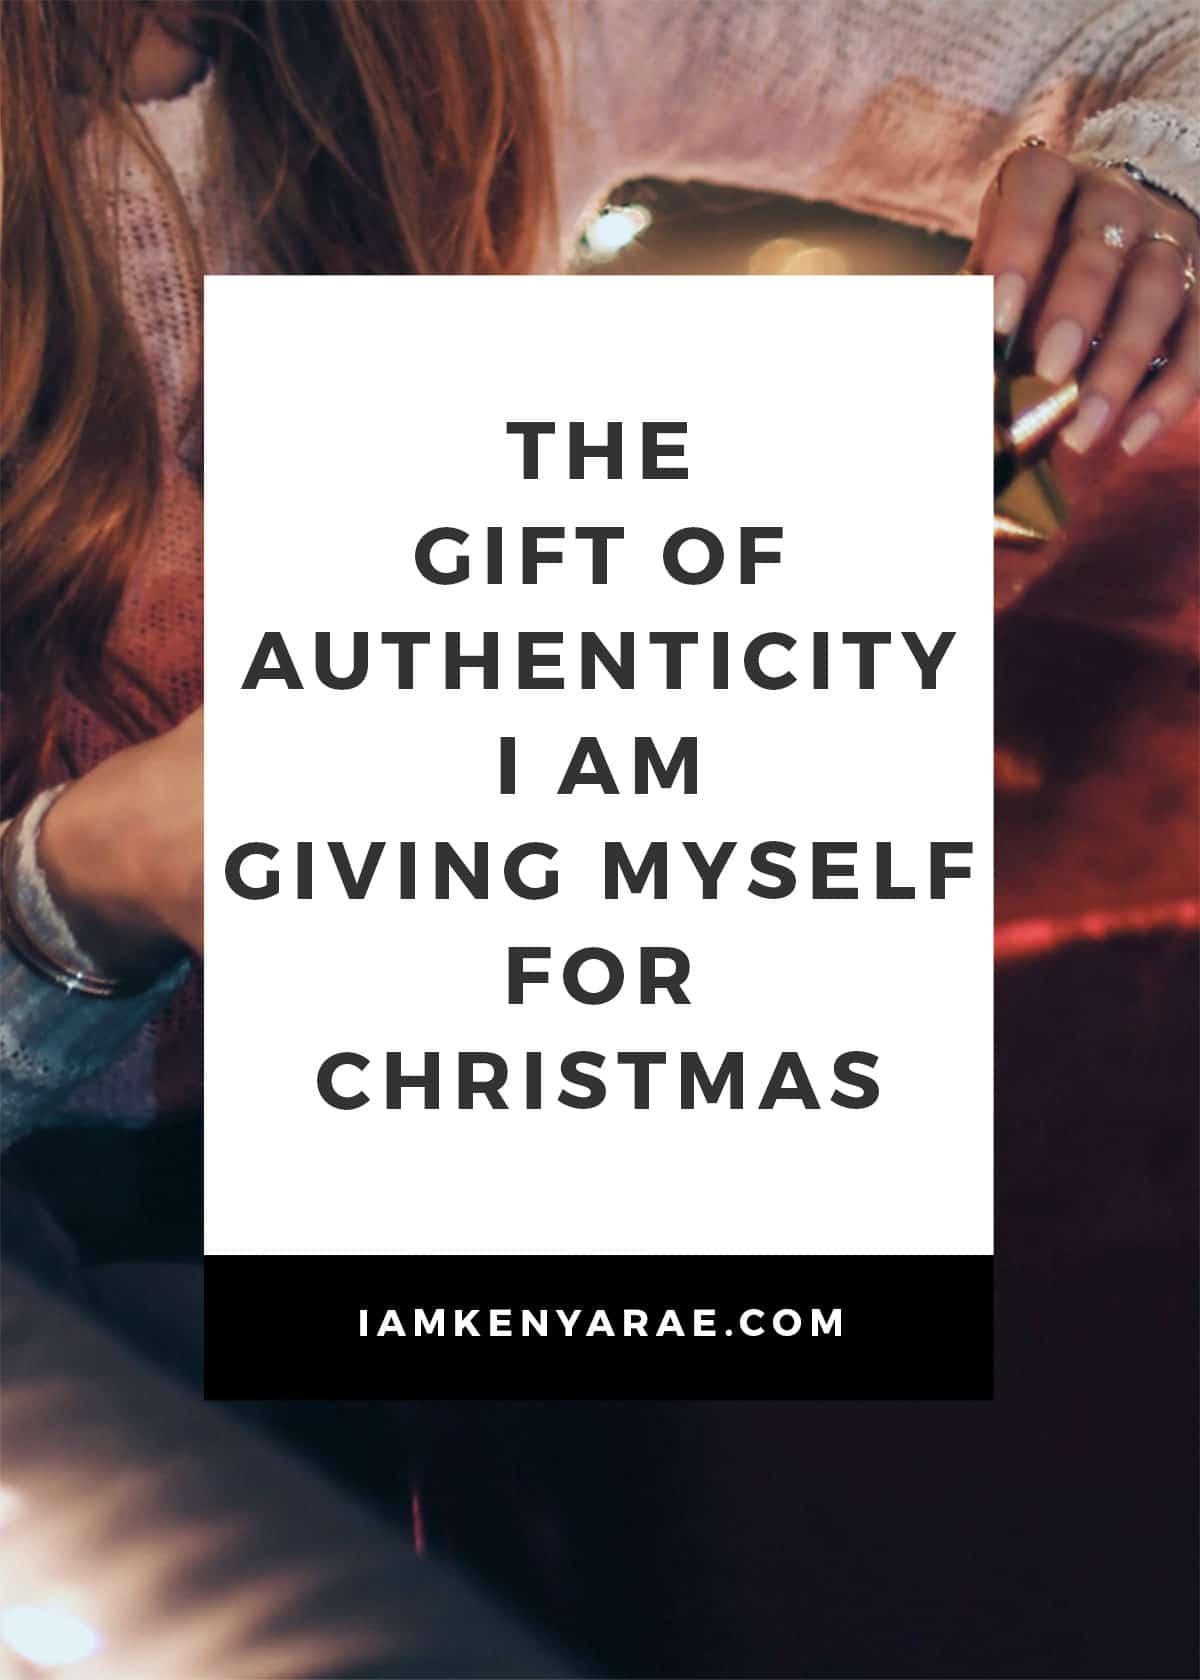 the gift of authenticity